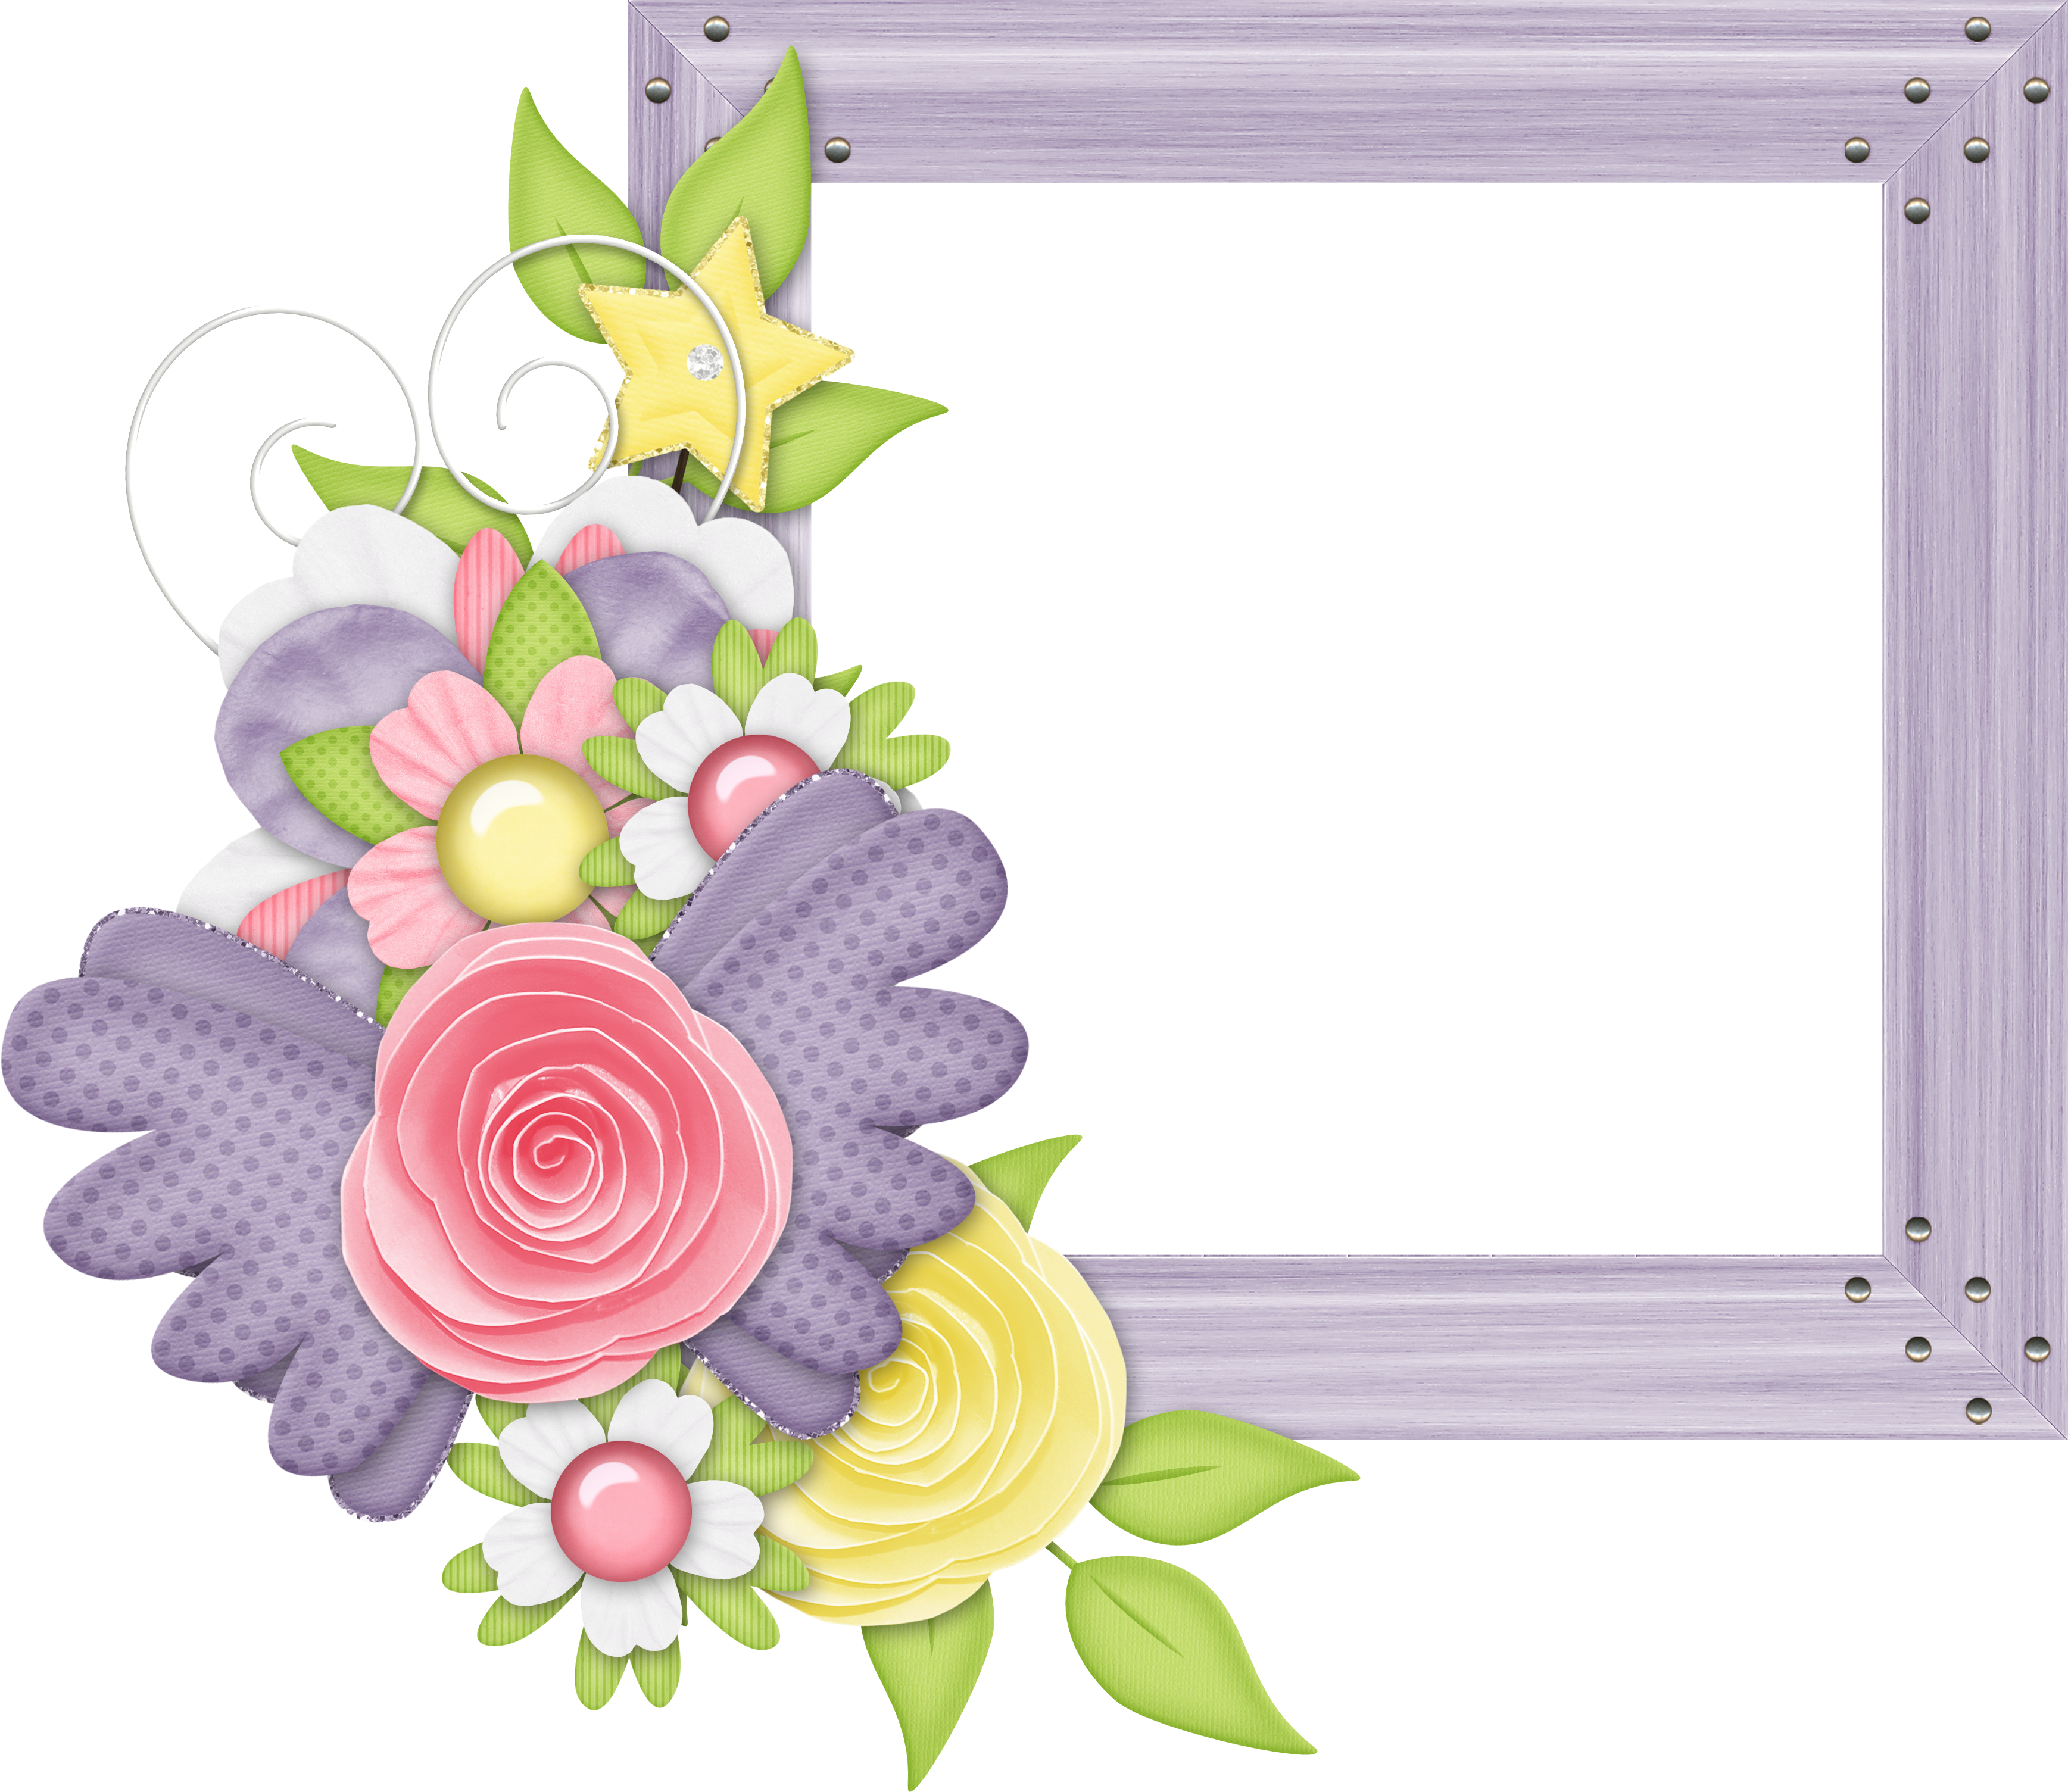 Crown board frame clipart picture library stock Cute Large Design Purple Transparent Frame with Flowers | Рамки ... picture library stock